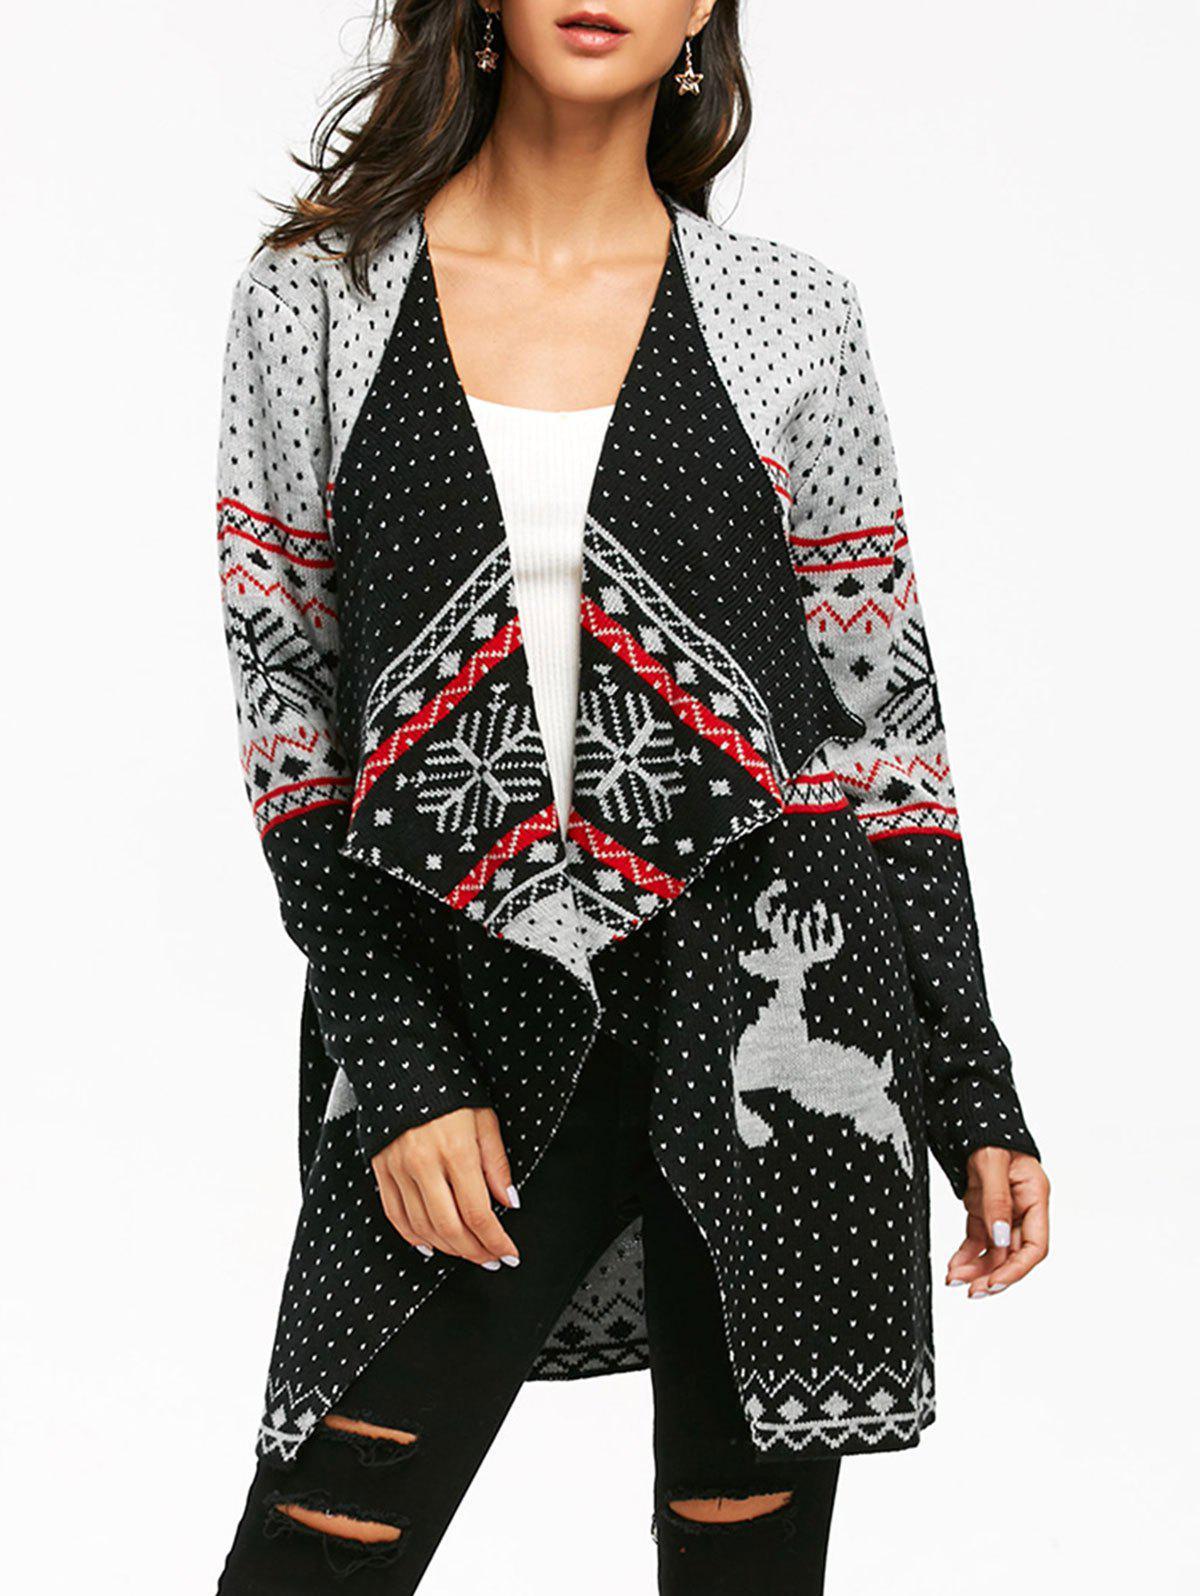 Christmas Reindeer Polka Dot Tunic Draped CardiganWOMEN<br><br>Size: L; Color: COLORMIX; Type: Cardigans; Material: Acrylic; Sleeve Length: Full; Collar: Collarless; Style: Casual; Pattern Type: Character,Polka Dot; Season: Fall,Spring,Winter; Elasticity: Micro-elastic; Weight: 0.6200kg; Package Contents: 1 x Cardigan;